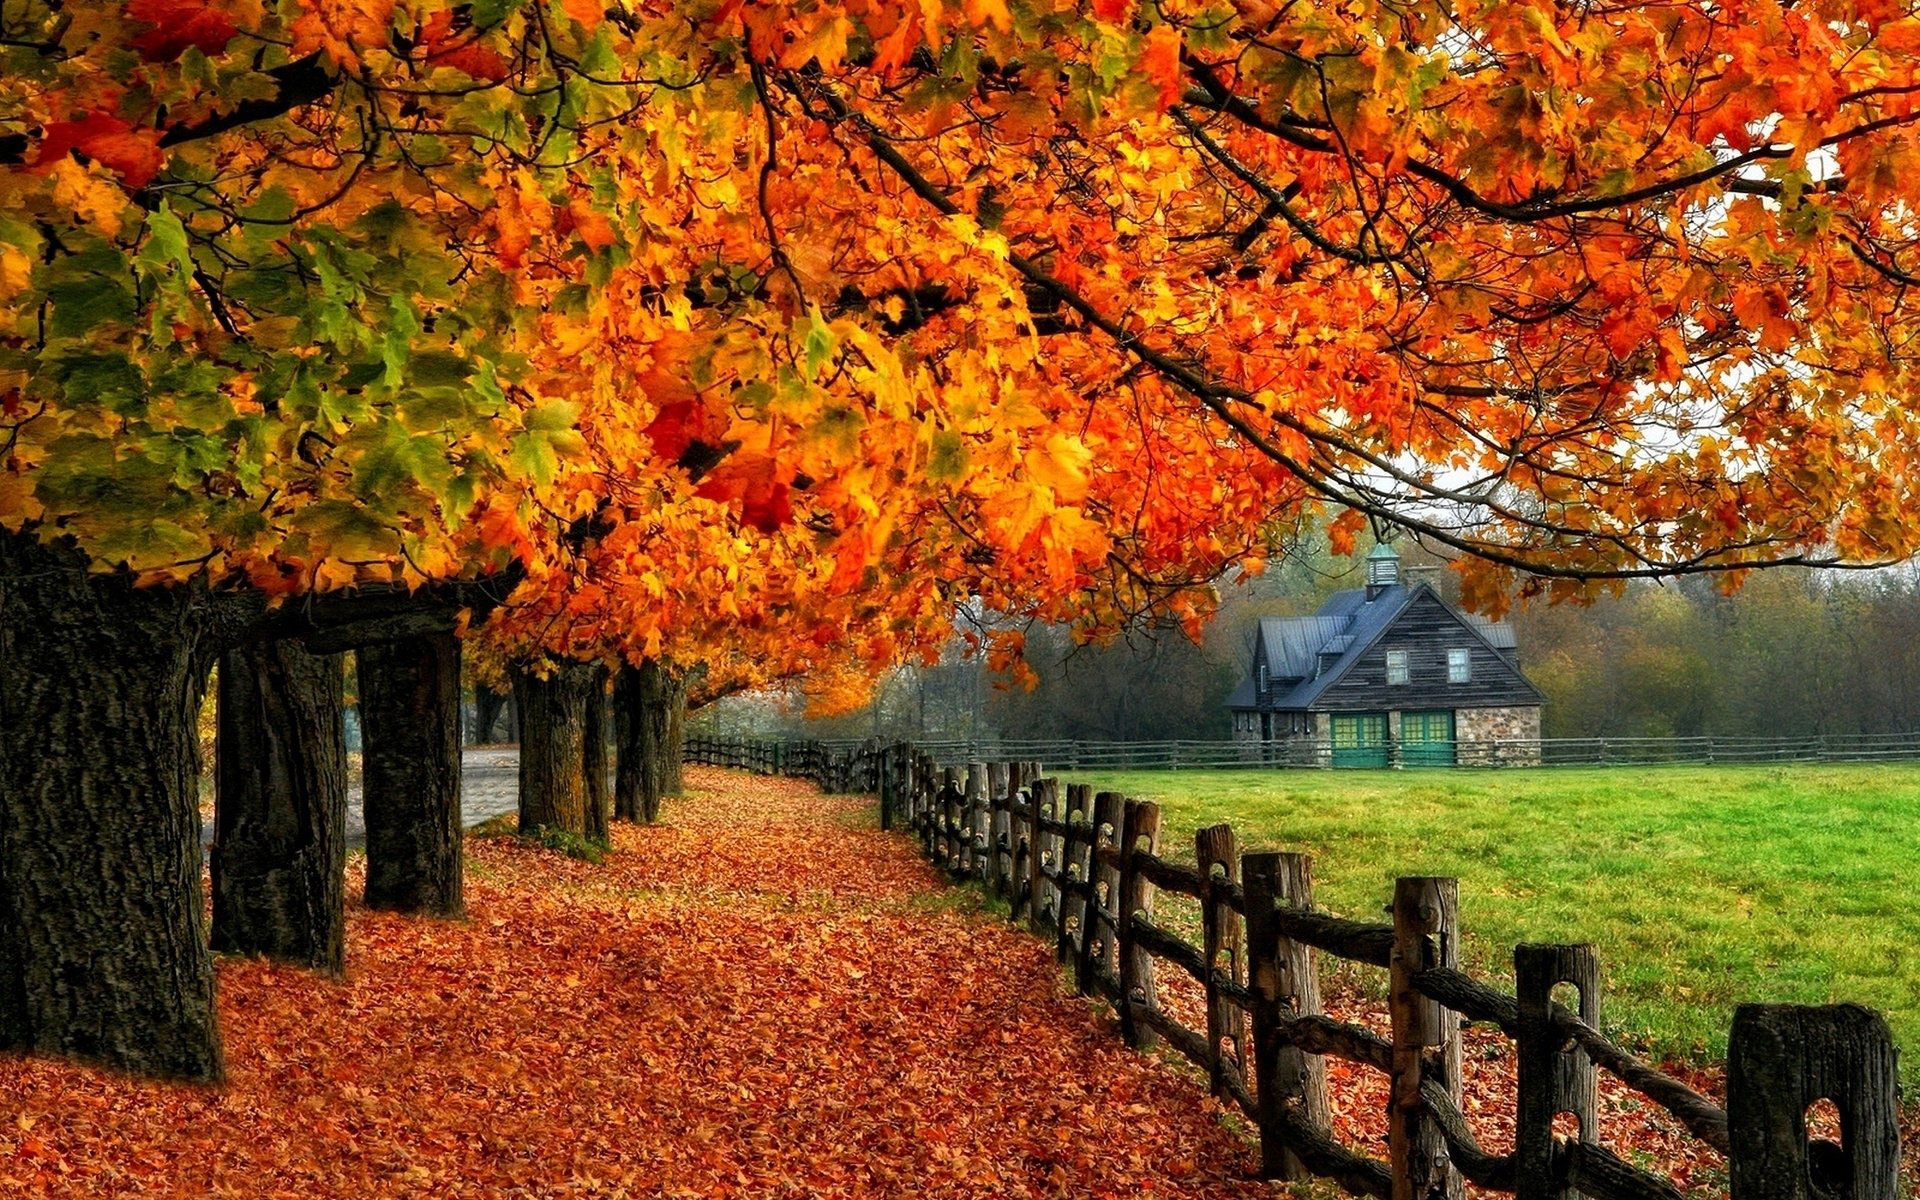 Autumn Fall Tree House Fenc Wallpaper Examples For Your Desktop Background